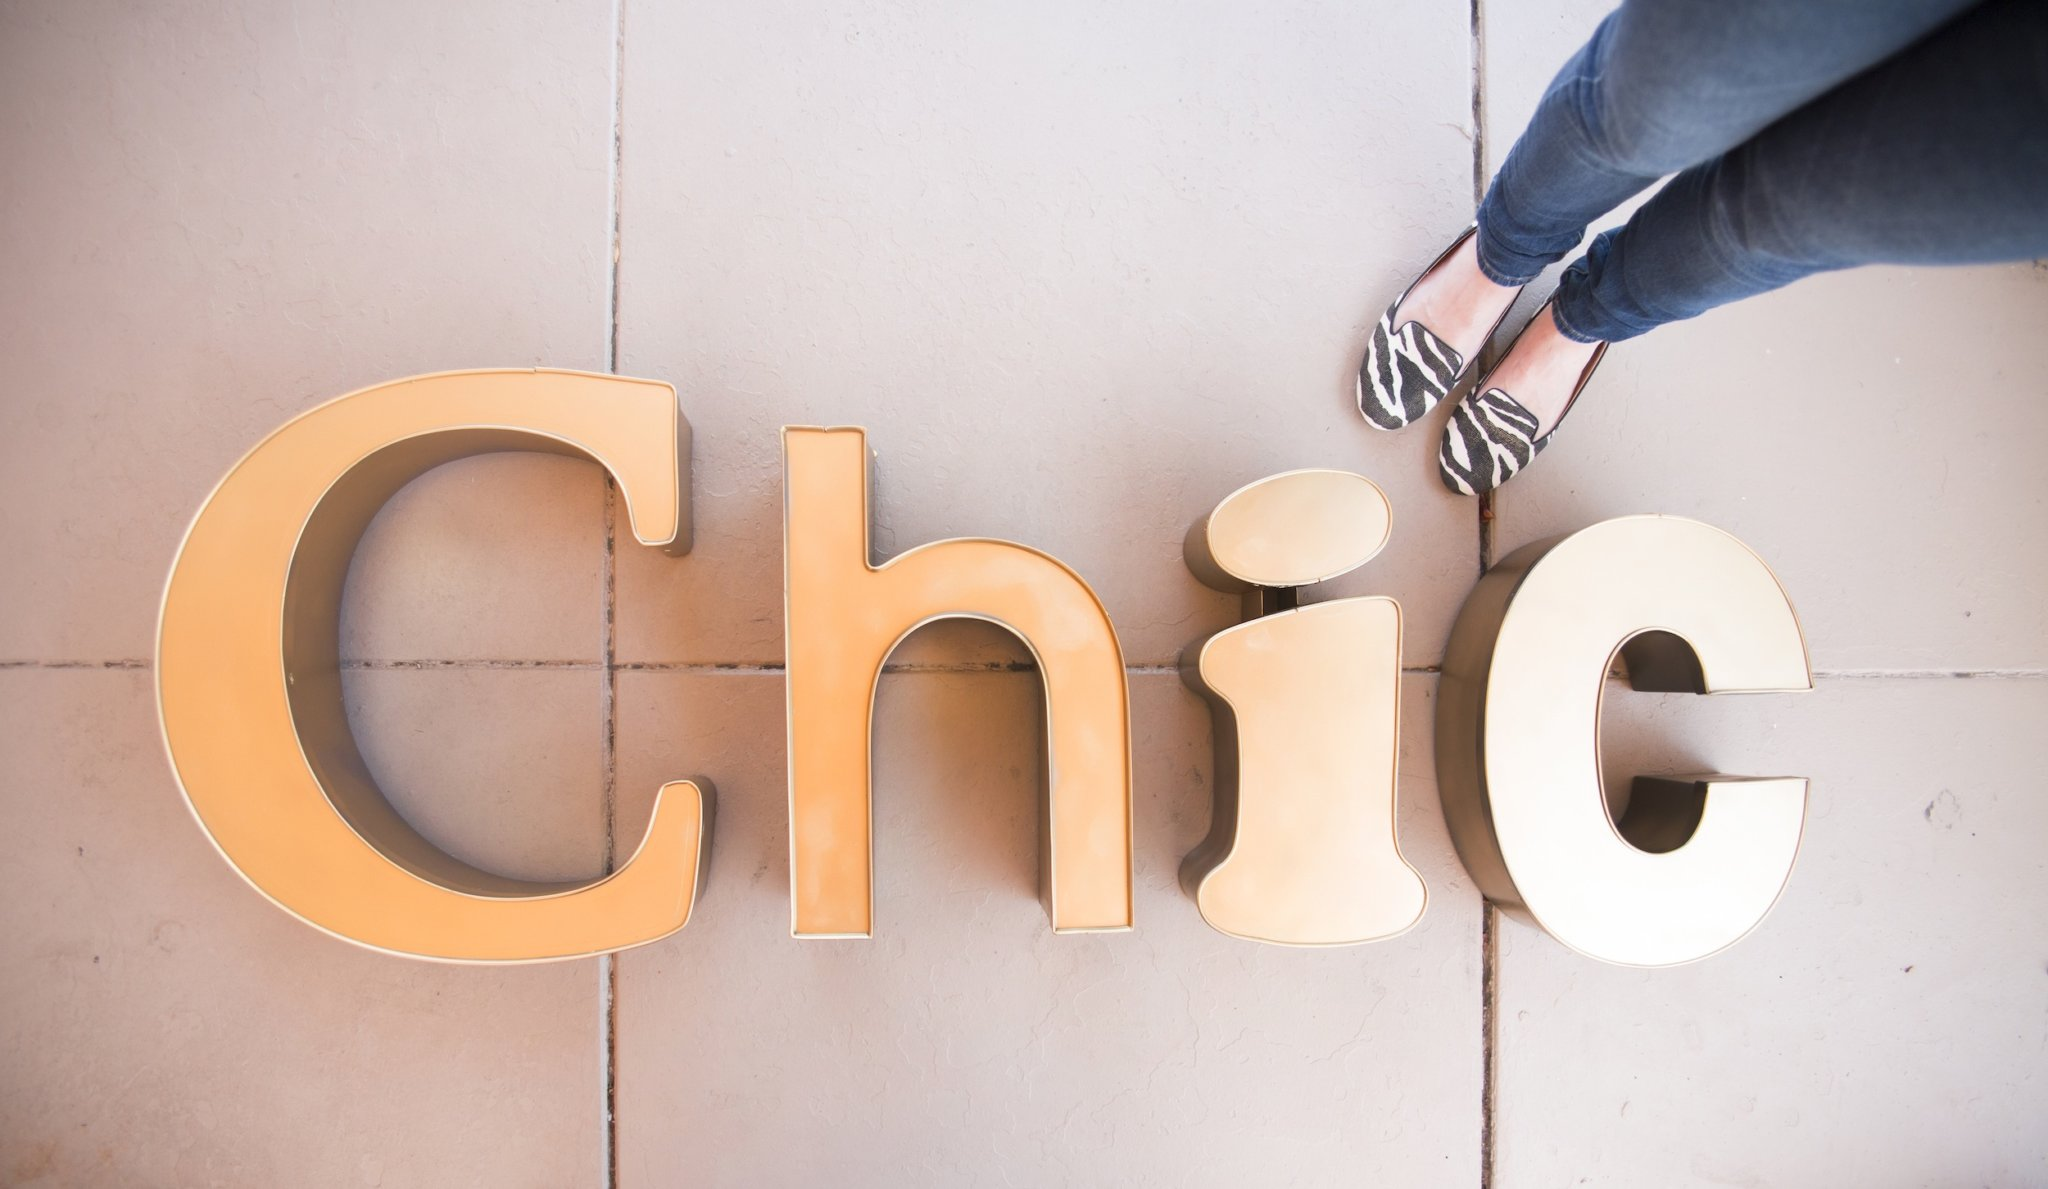 Chic Signage - TheChic